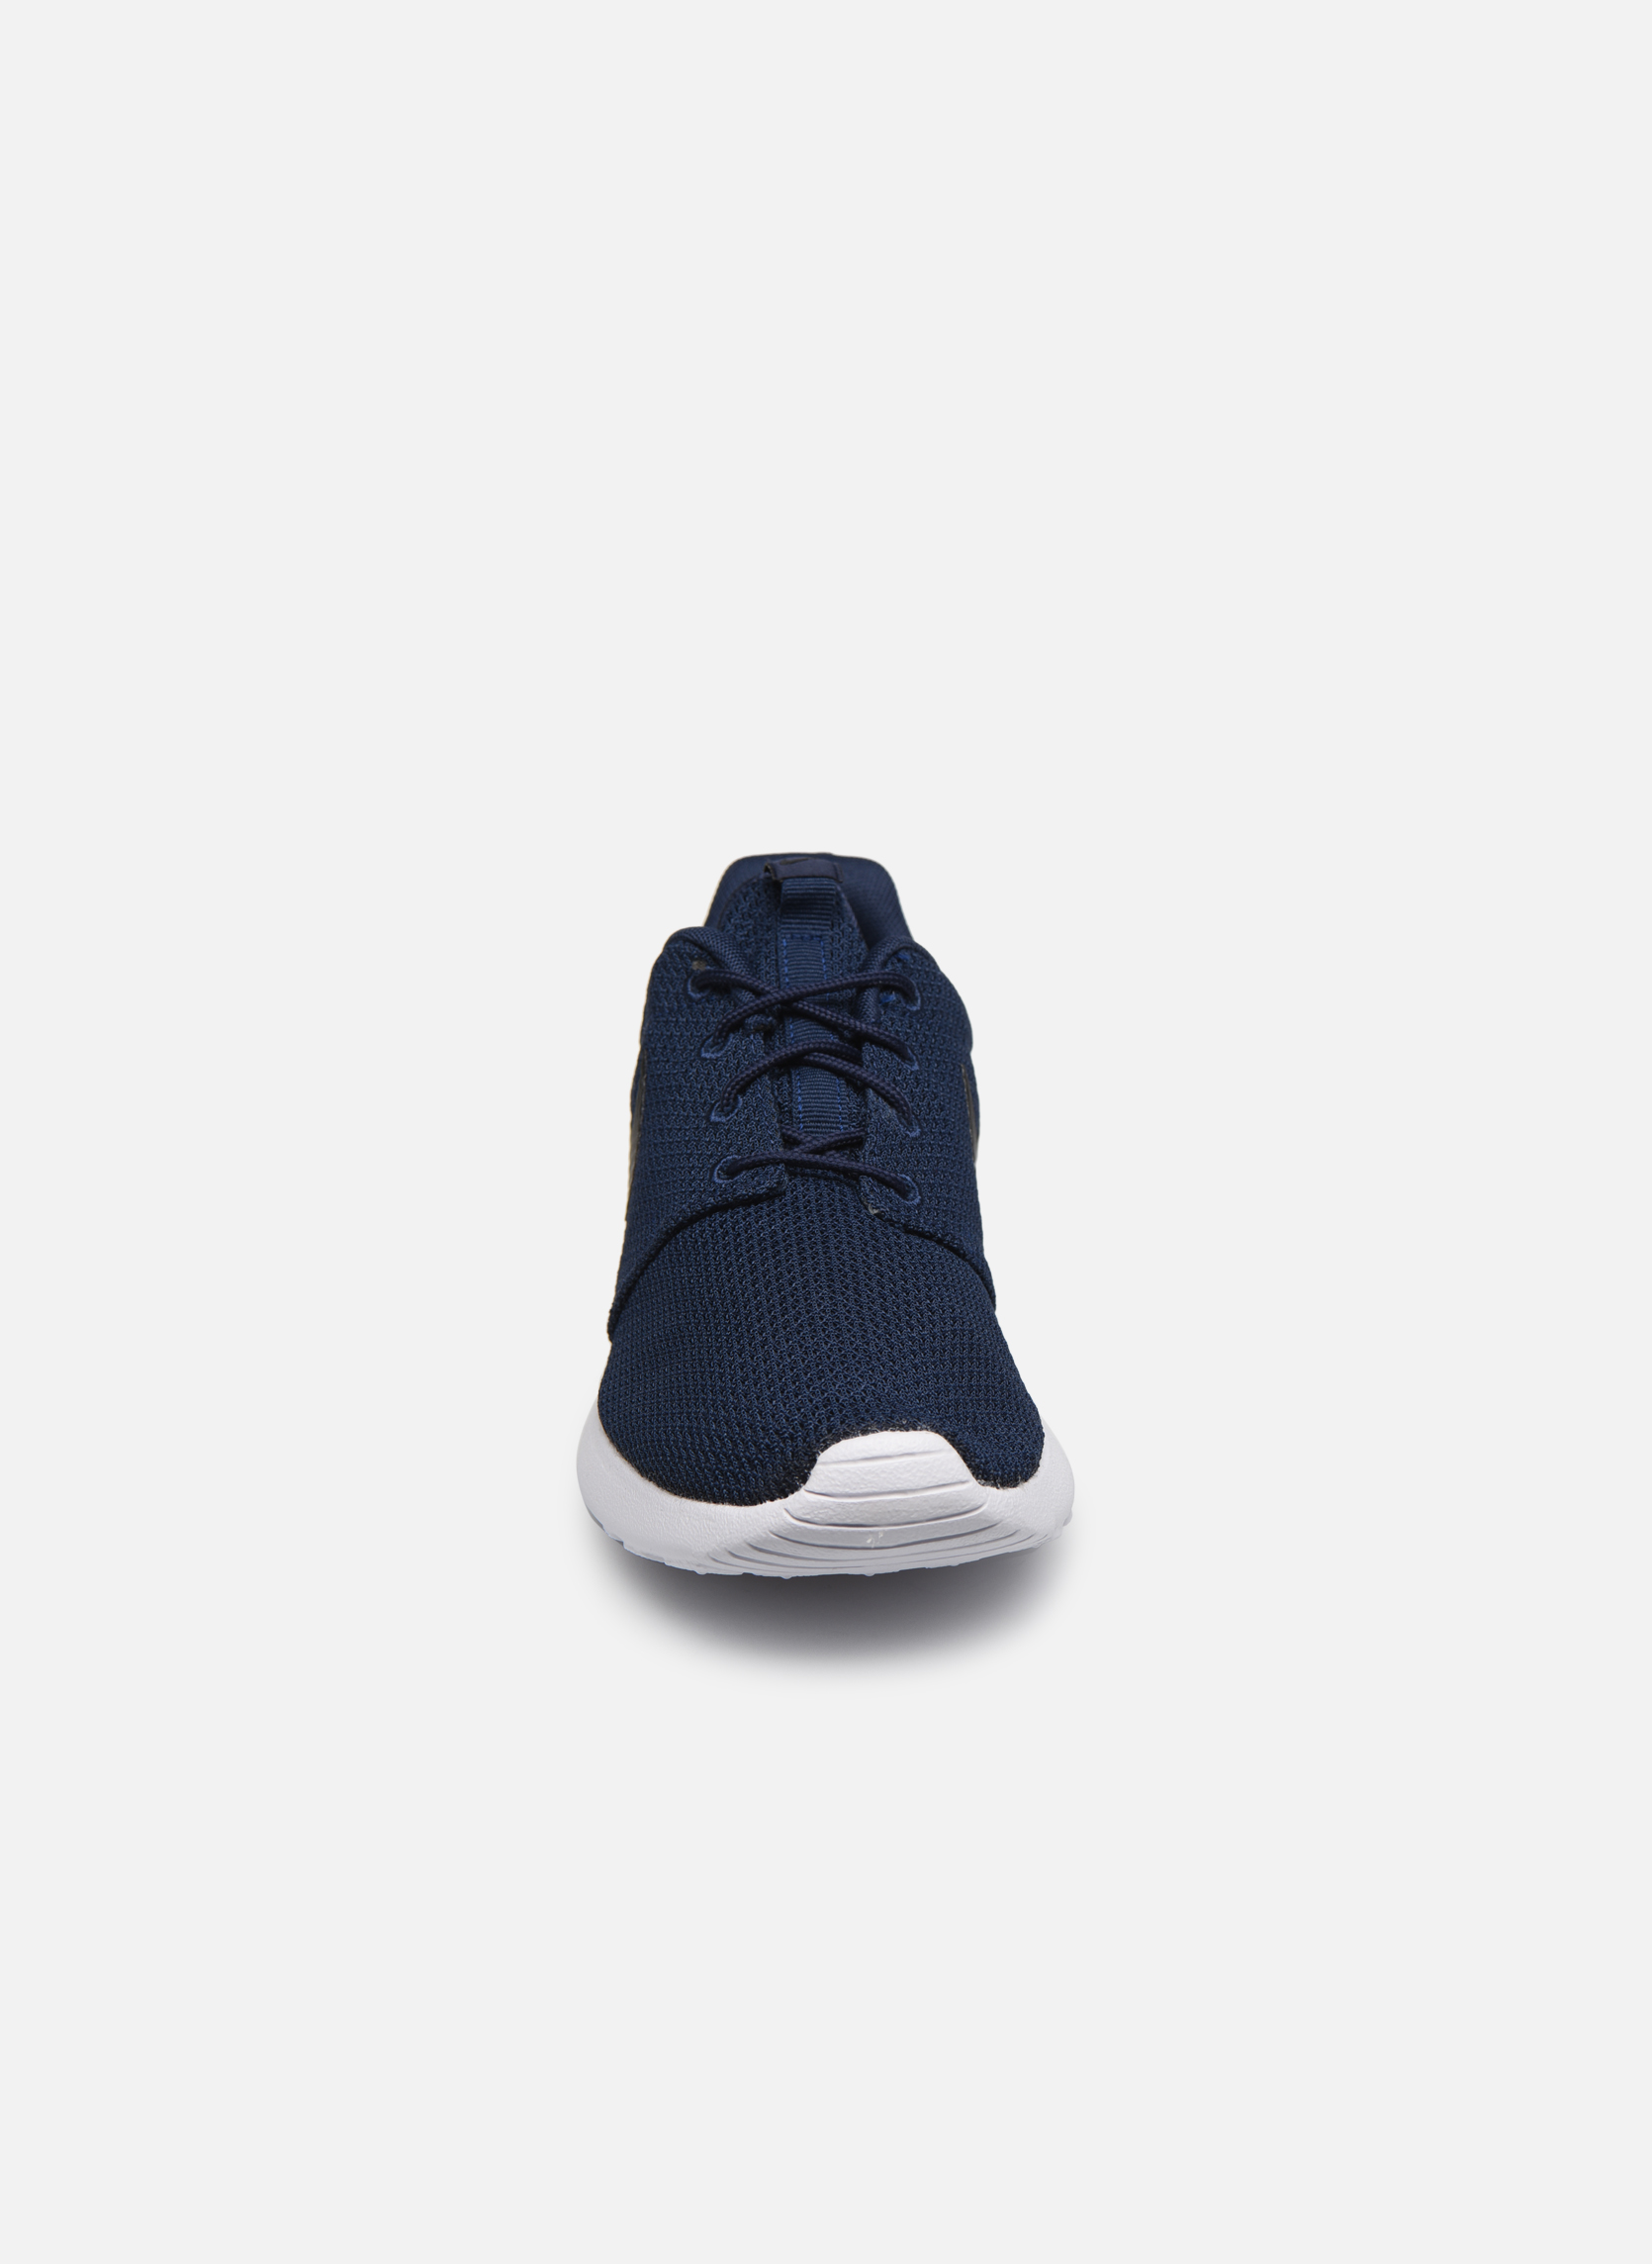 Nike Roshe One Midnight Navy/Black-White